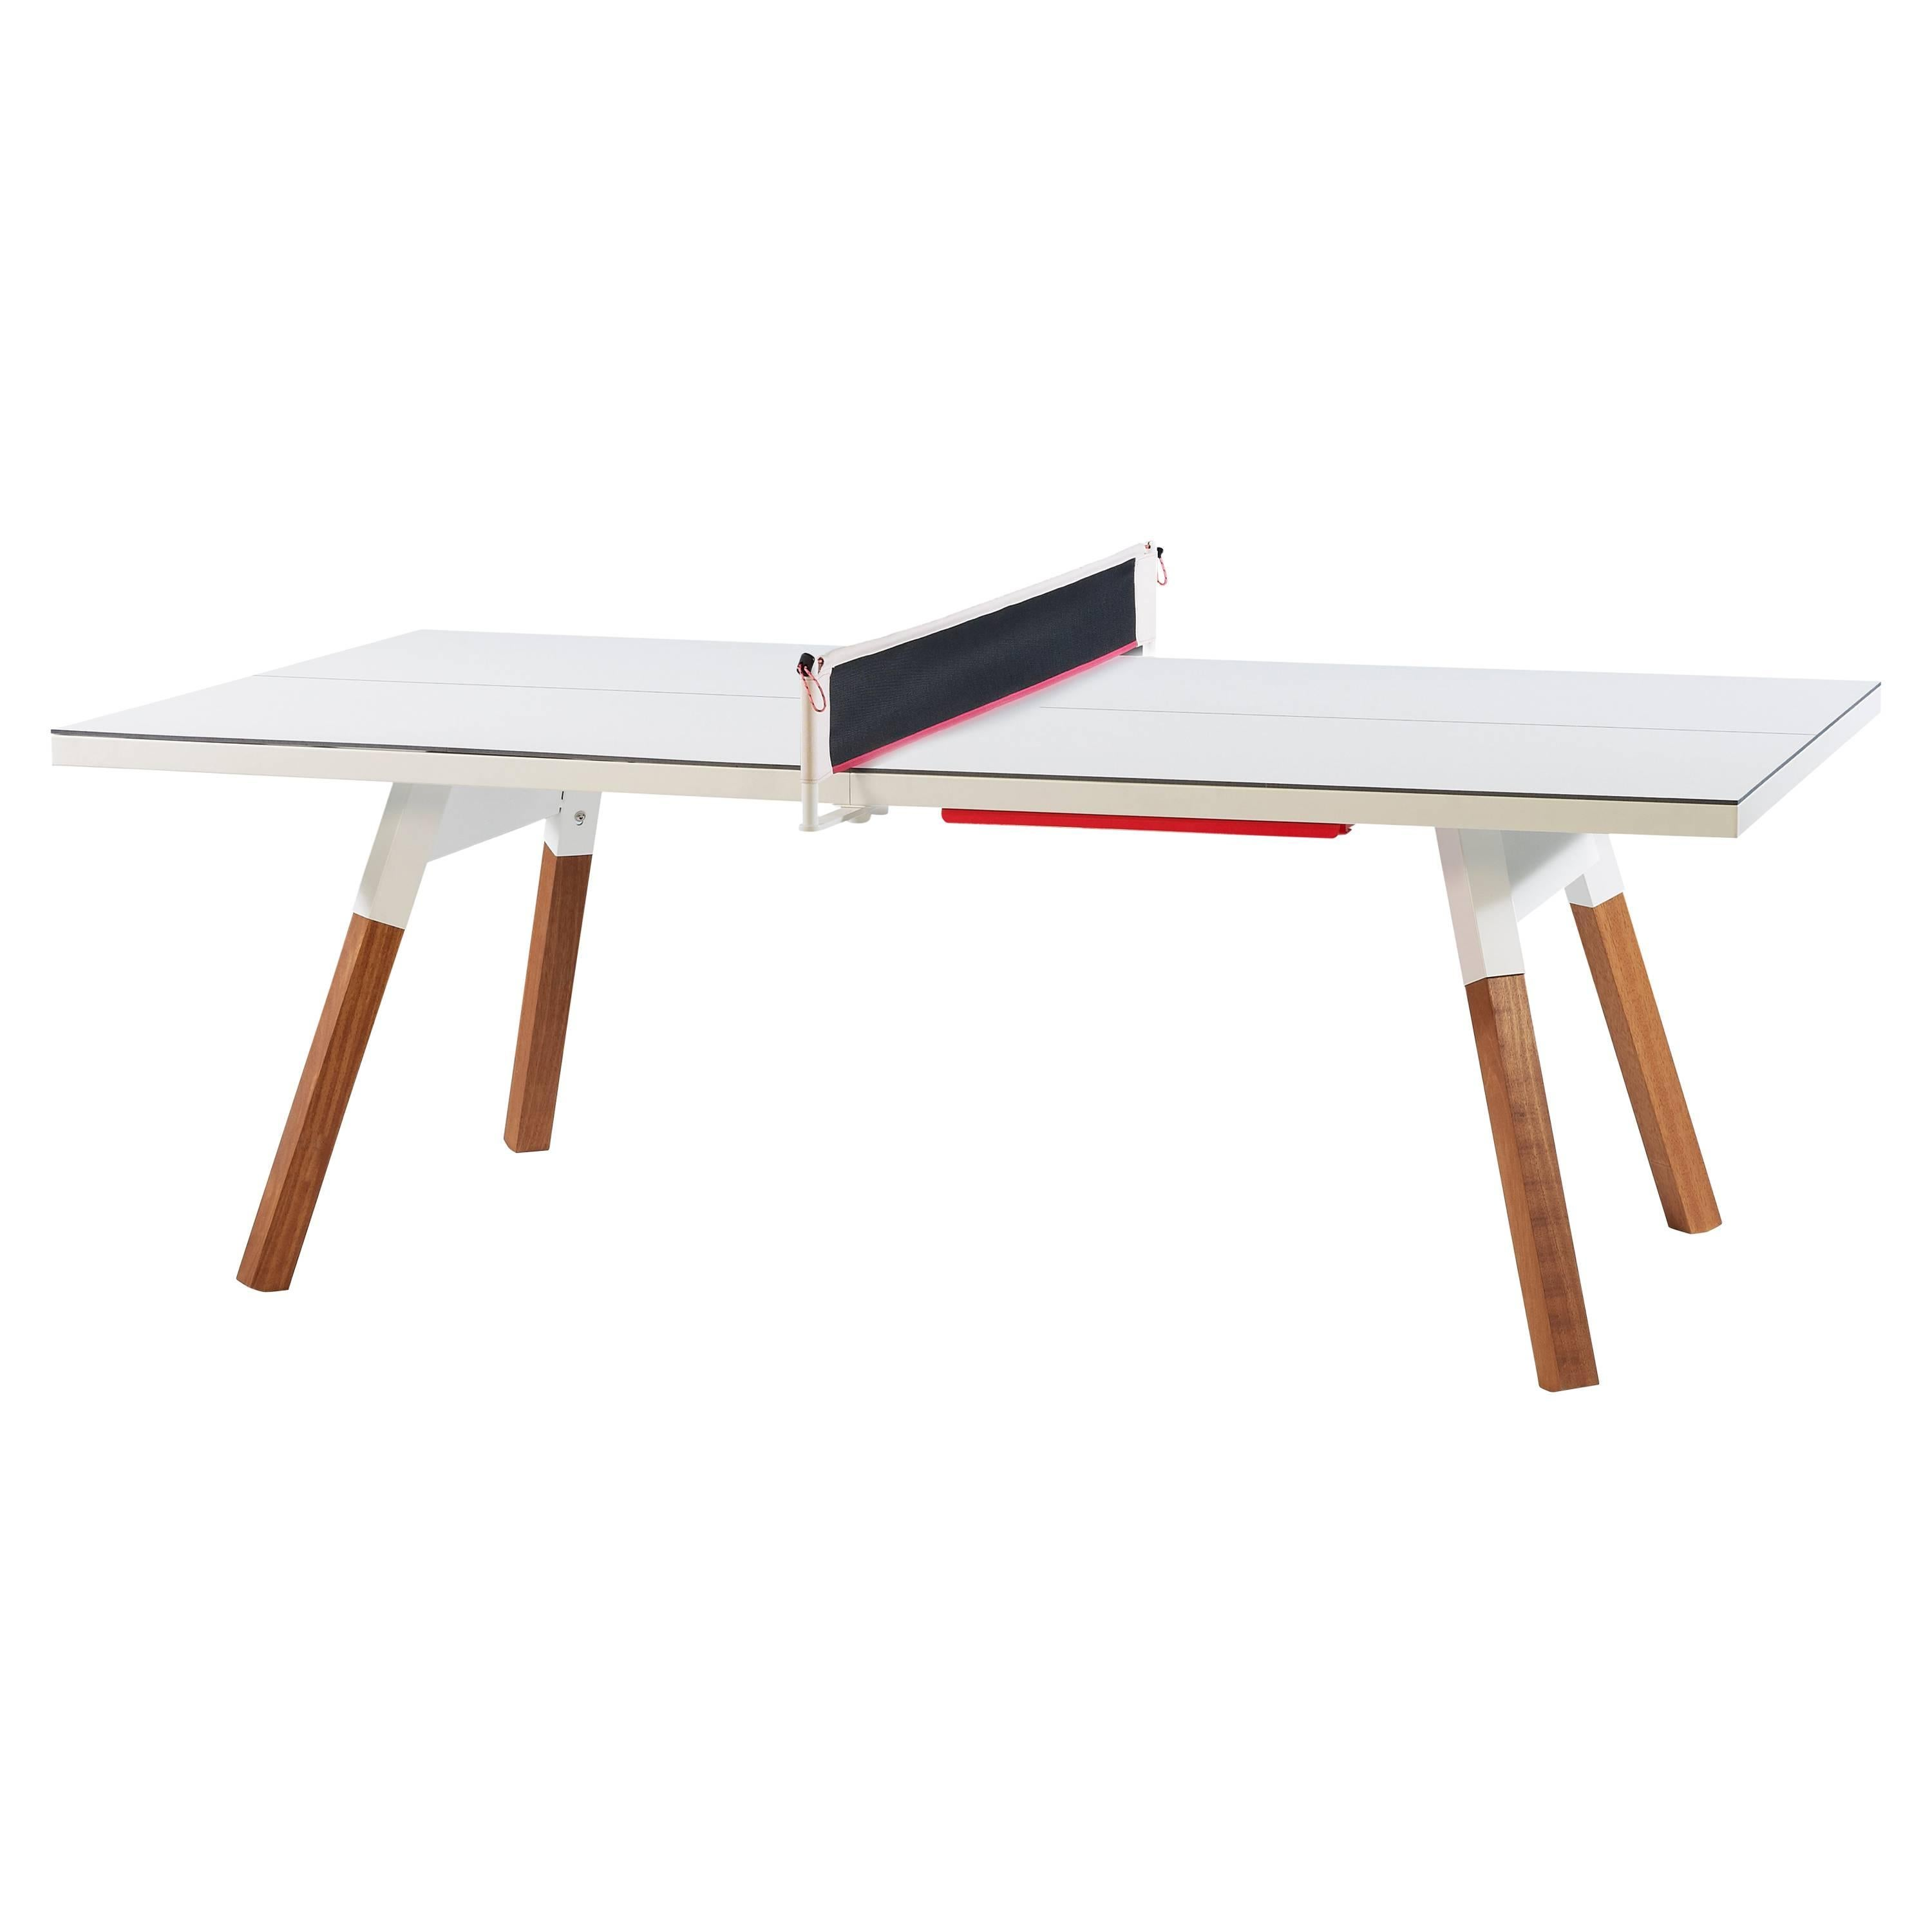 You & Me HPL Top Ping Pong Table 220 in White by RS Barcelona